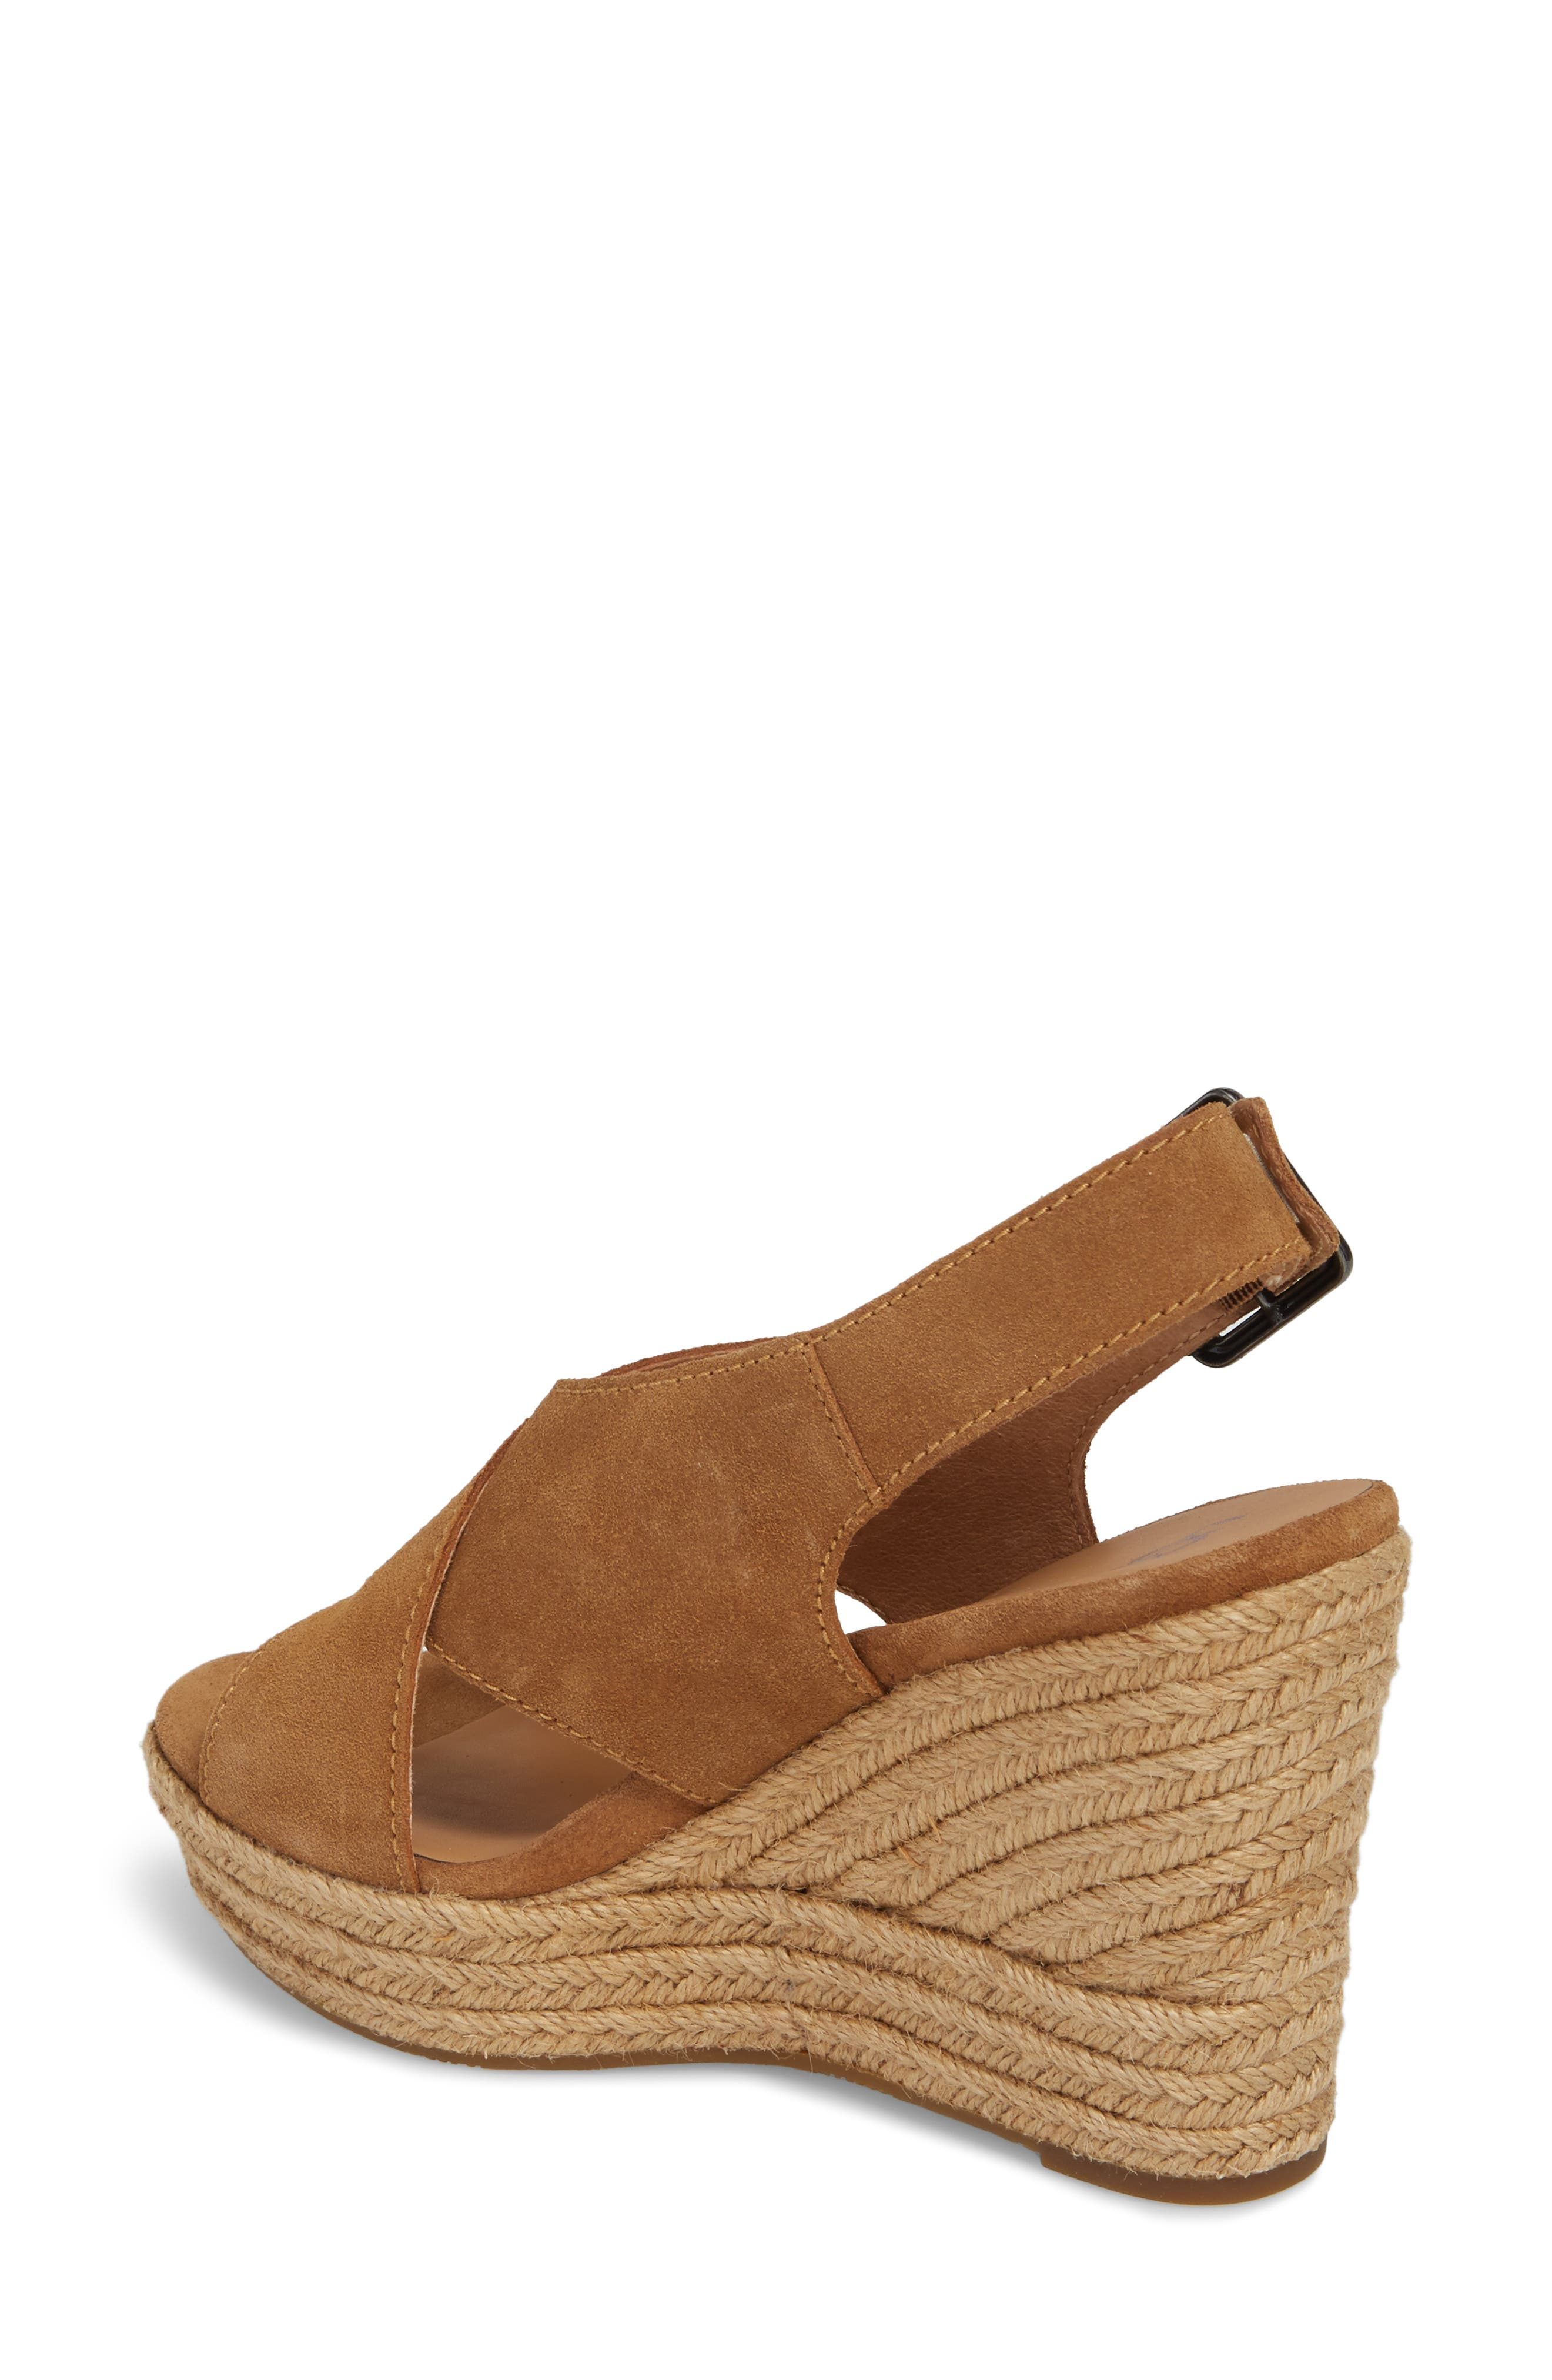 Harlow Platform Wedge Sandal,                             Alternate thumbnail 2, color,                             Chestnut Suede